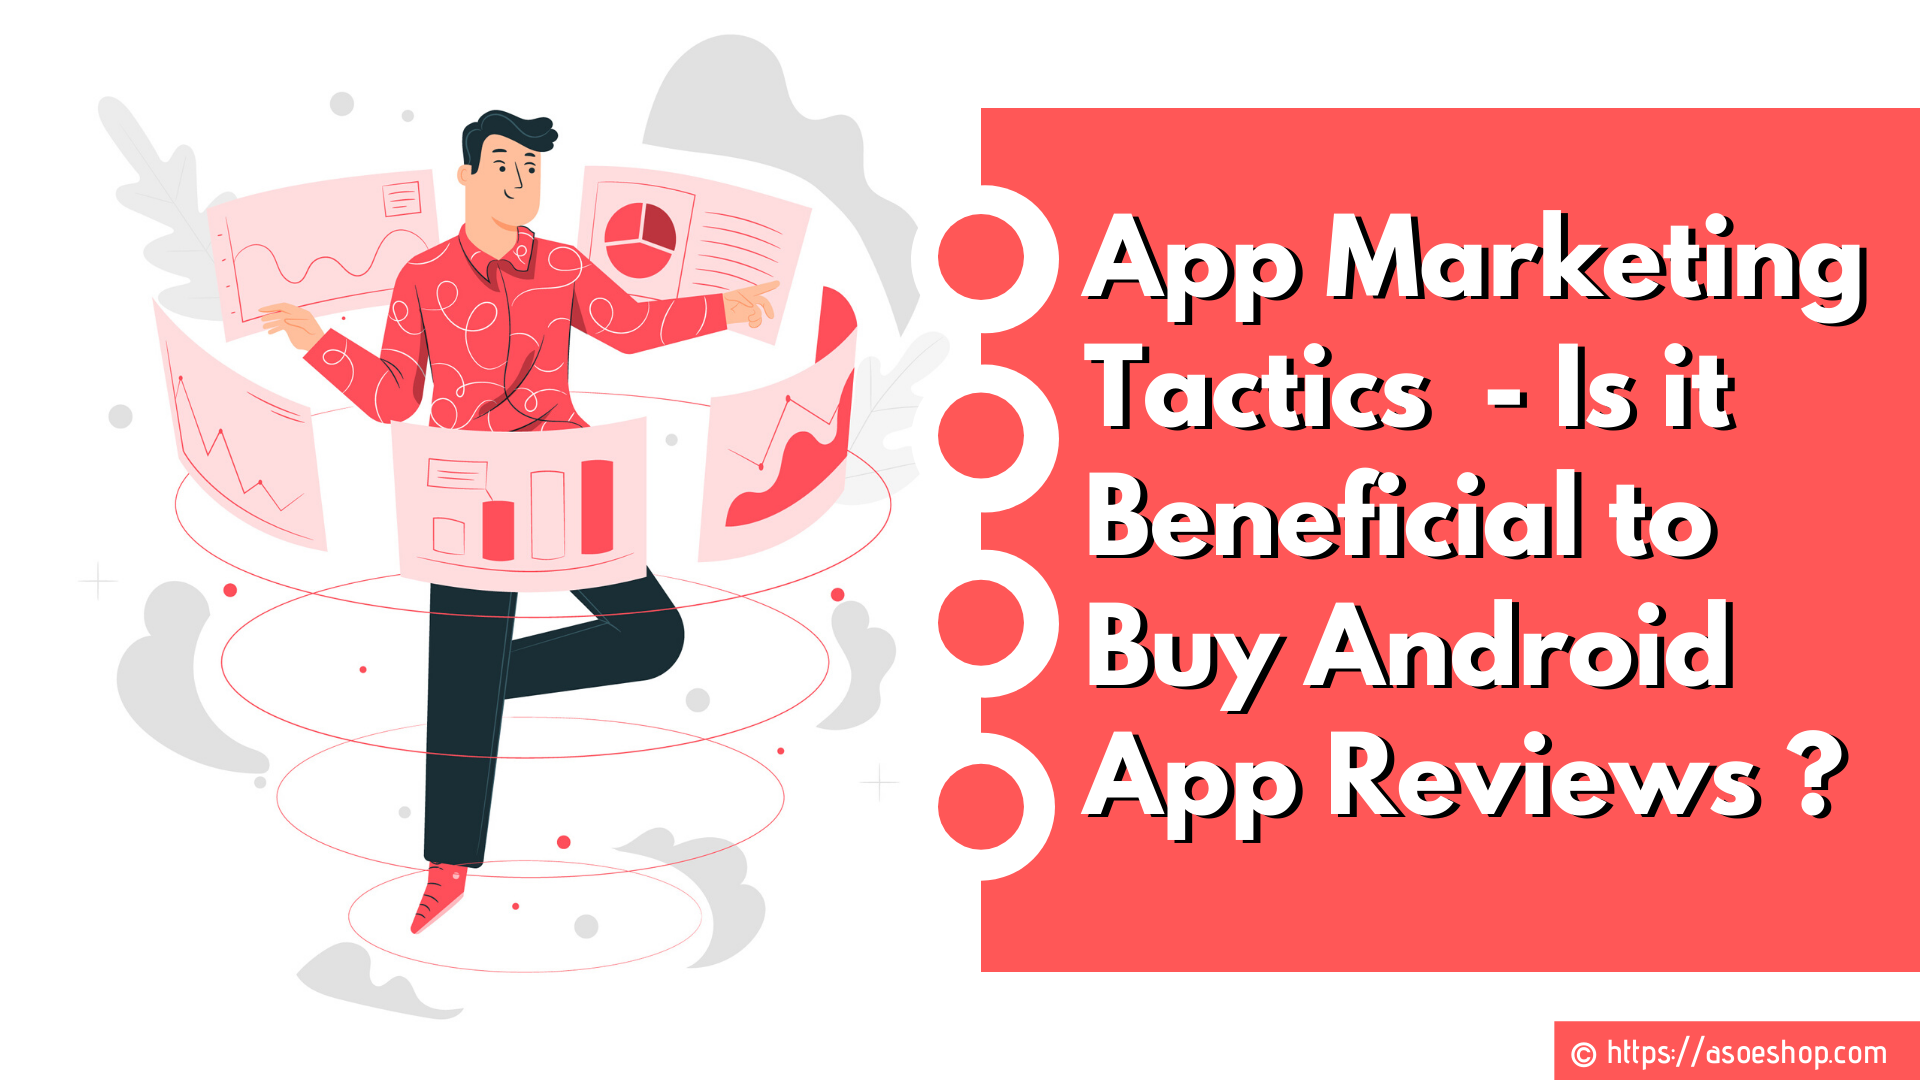 App Marketing Tactics – Is it Beneficial to Buy Android App Reviews ?